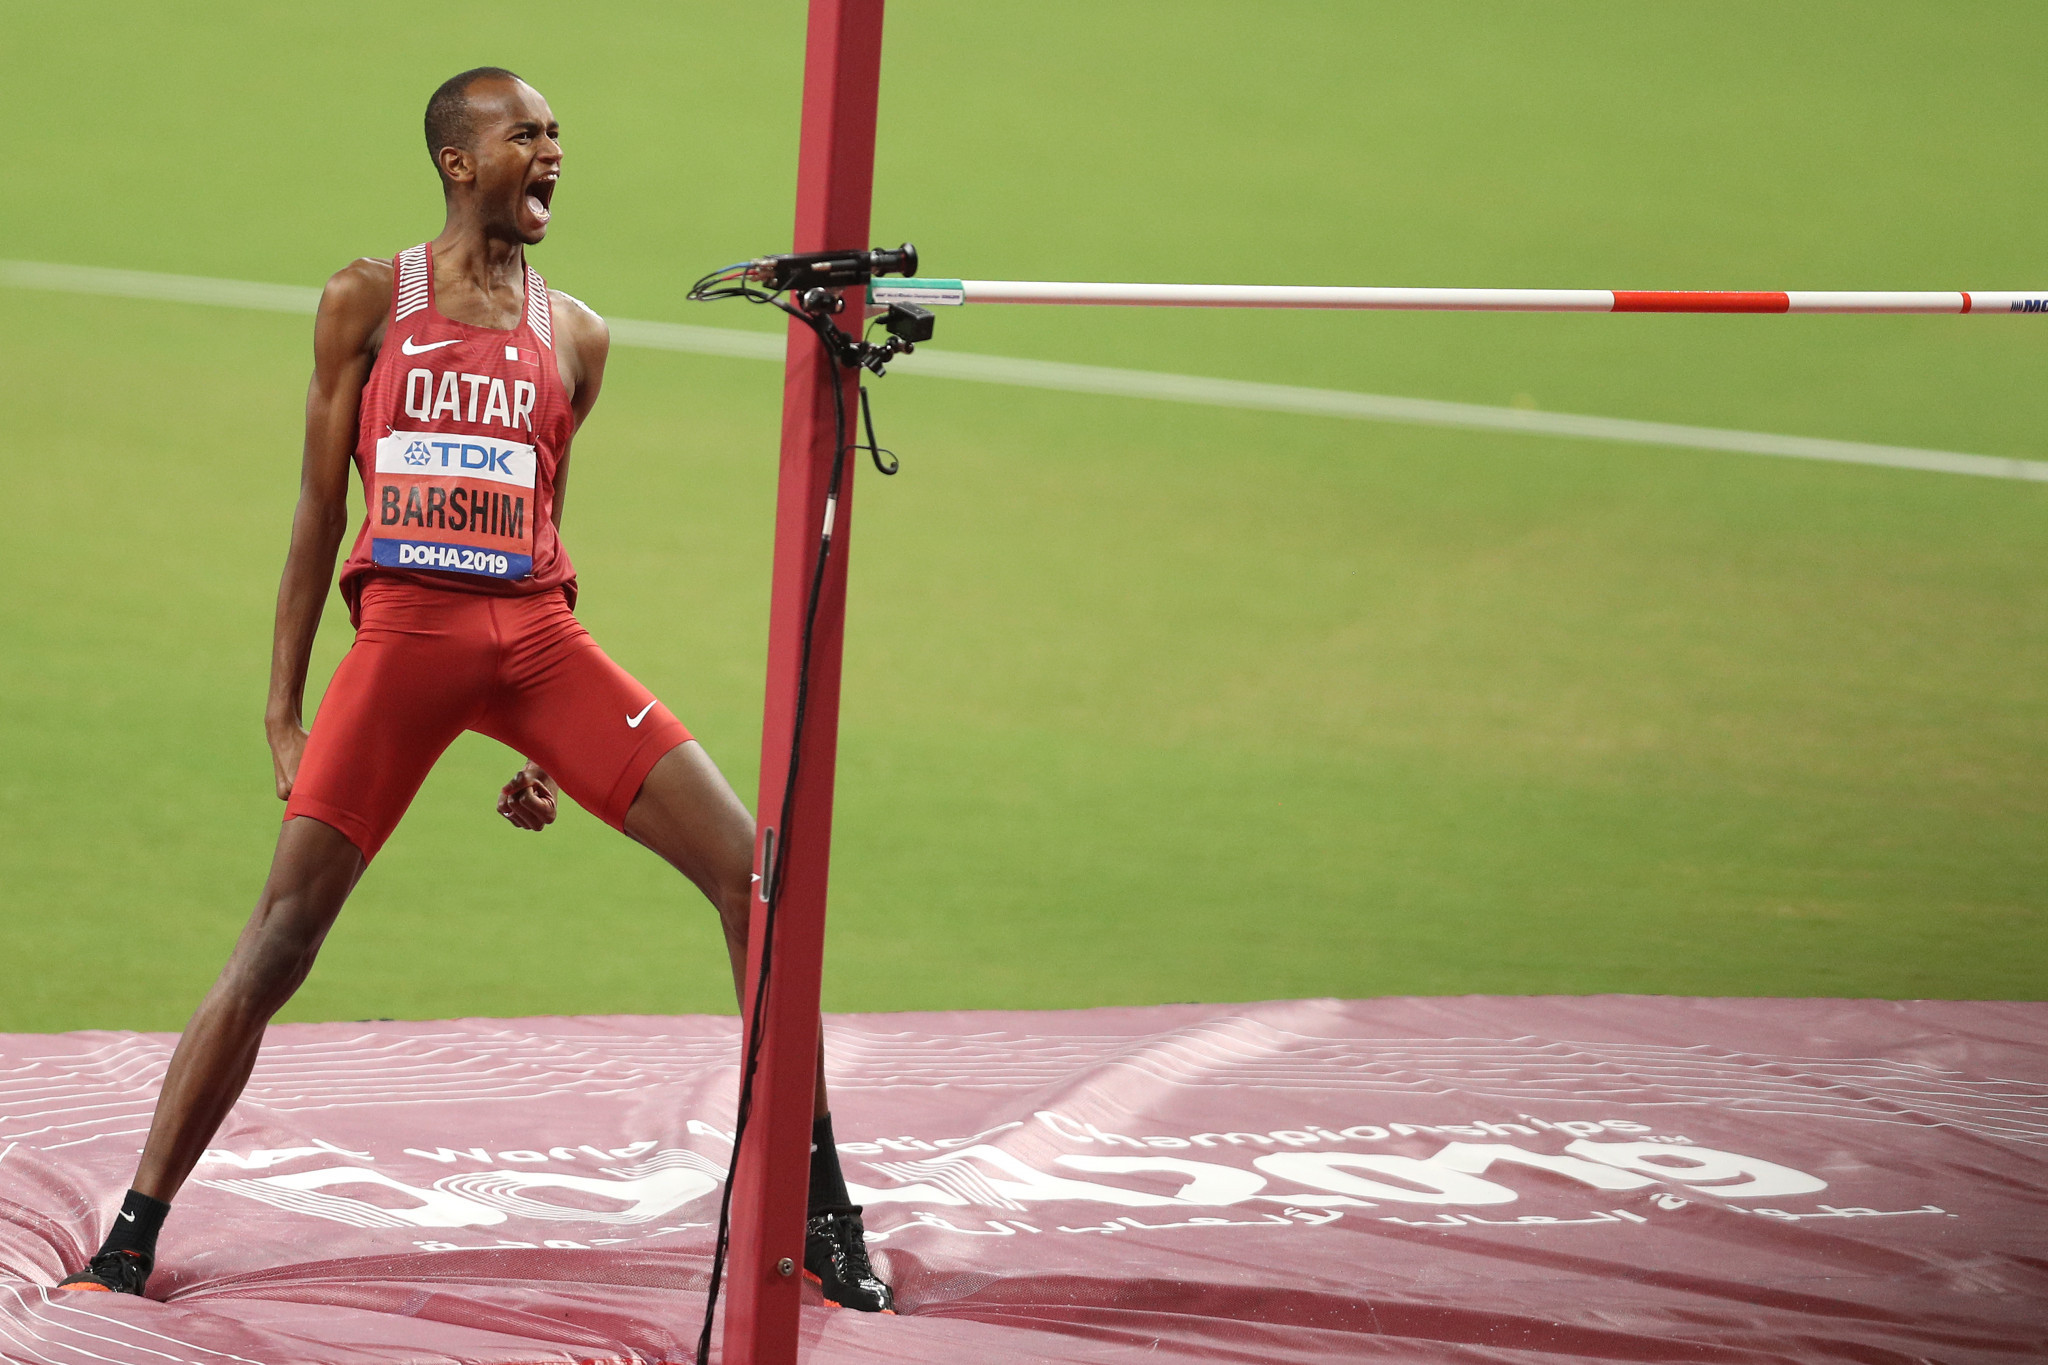 Two-time high jump world champion Barshim among athletes to back Doha 2030 Asian Games bid